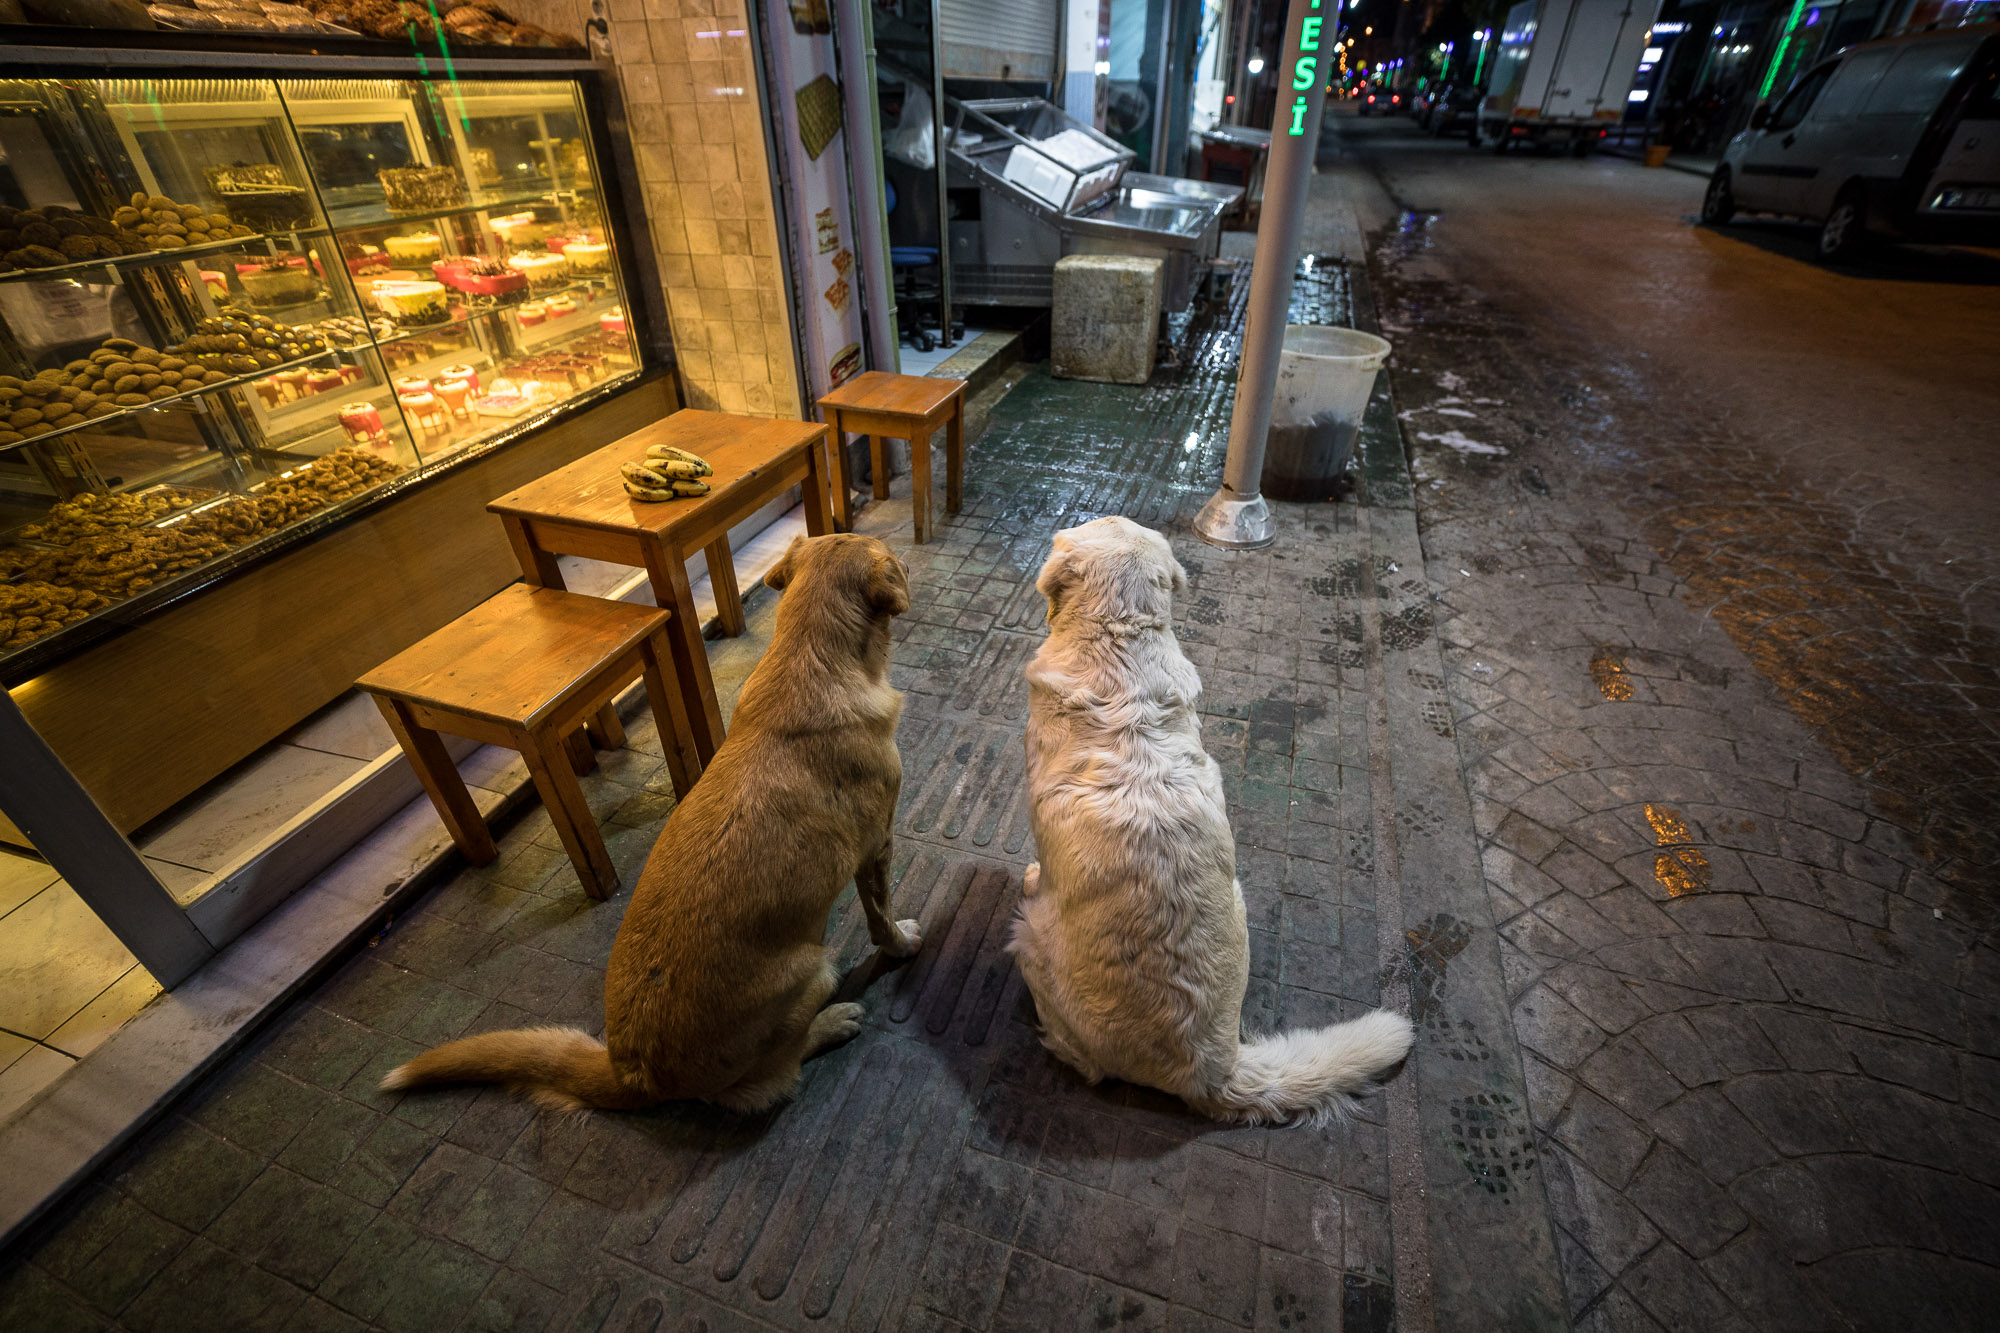 obese dogs waiting for food